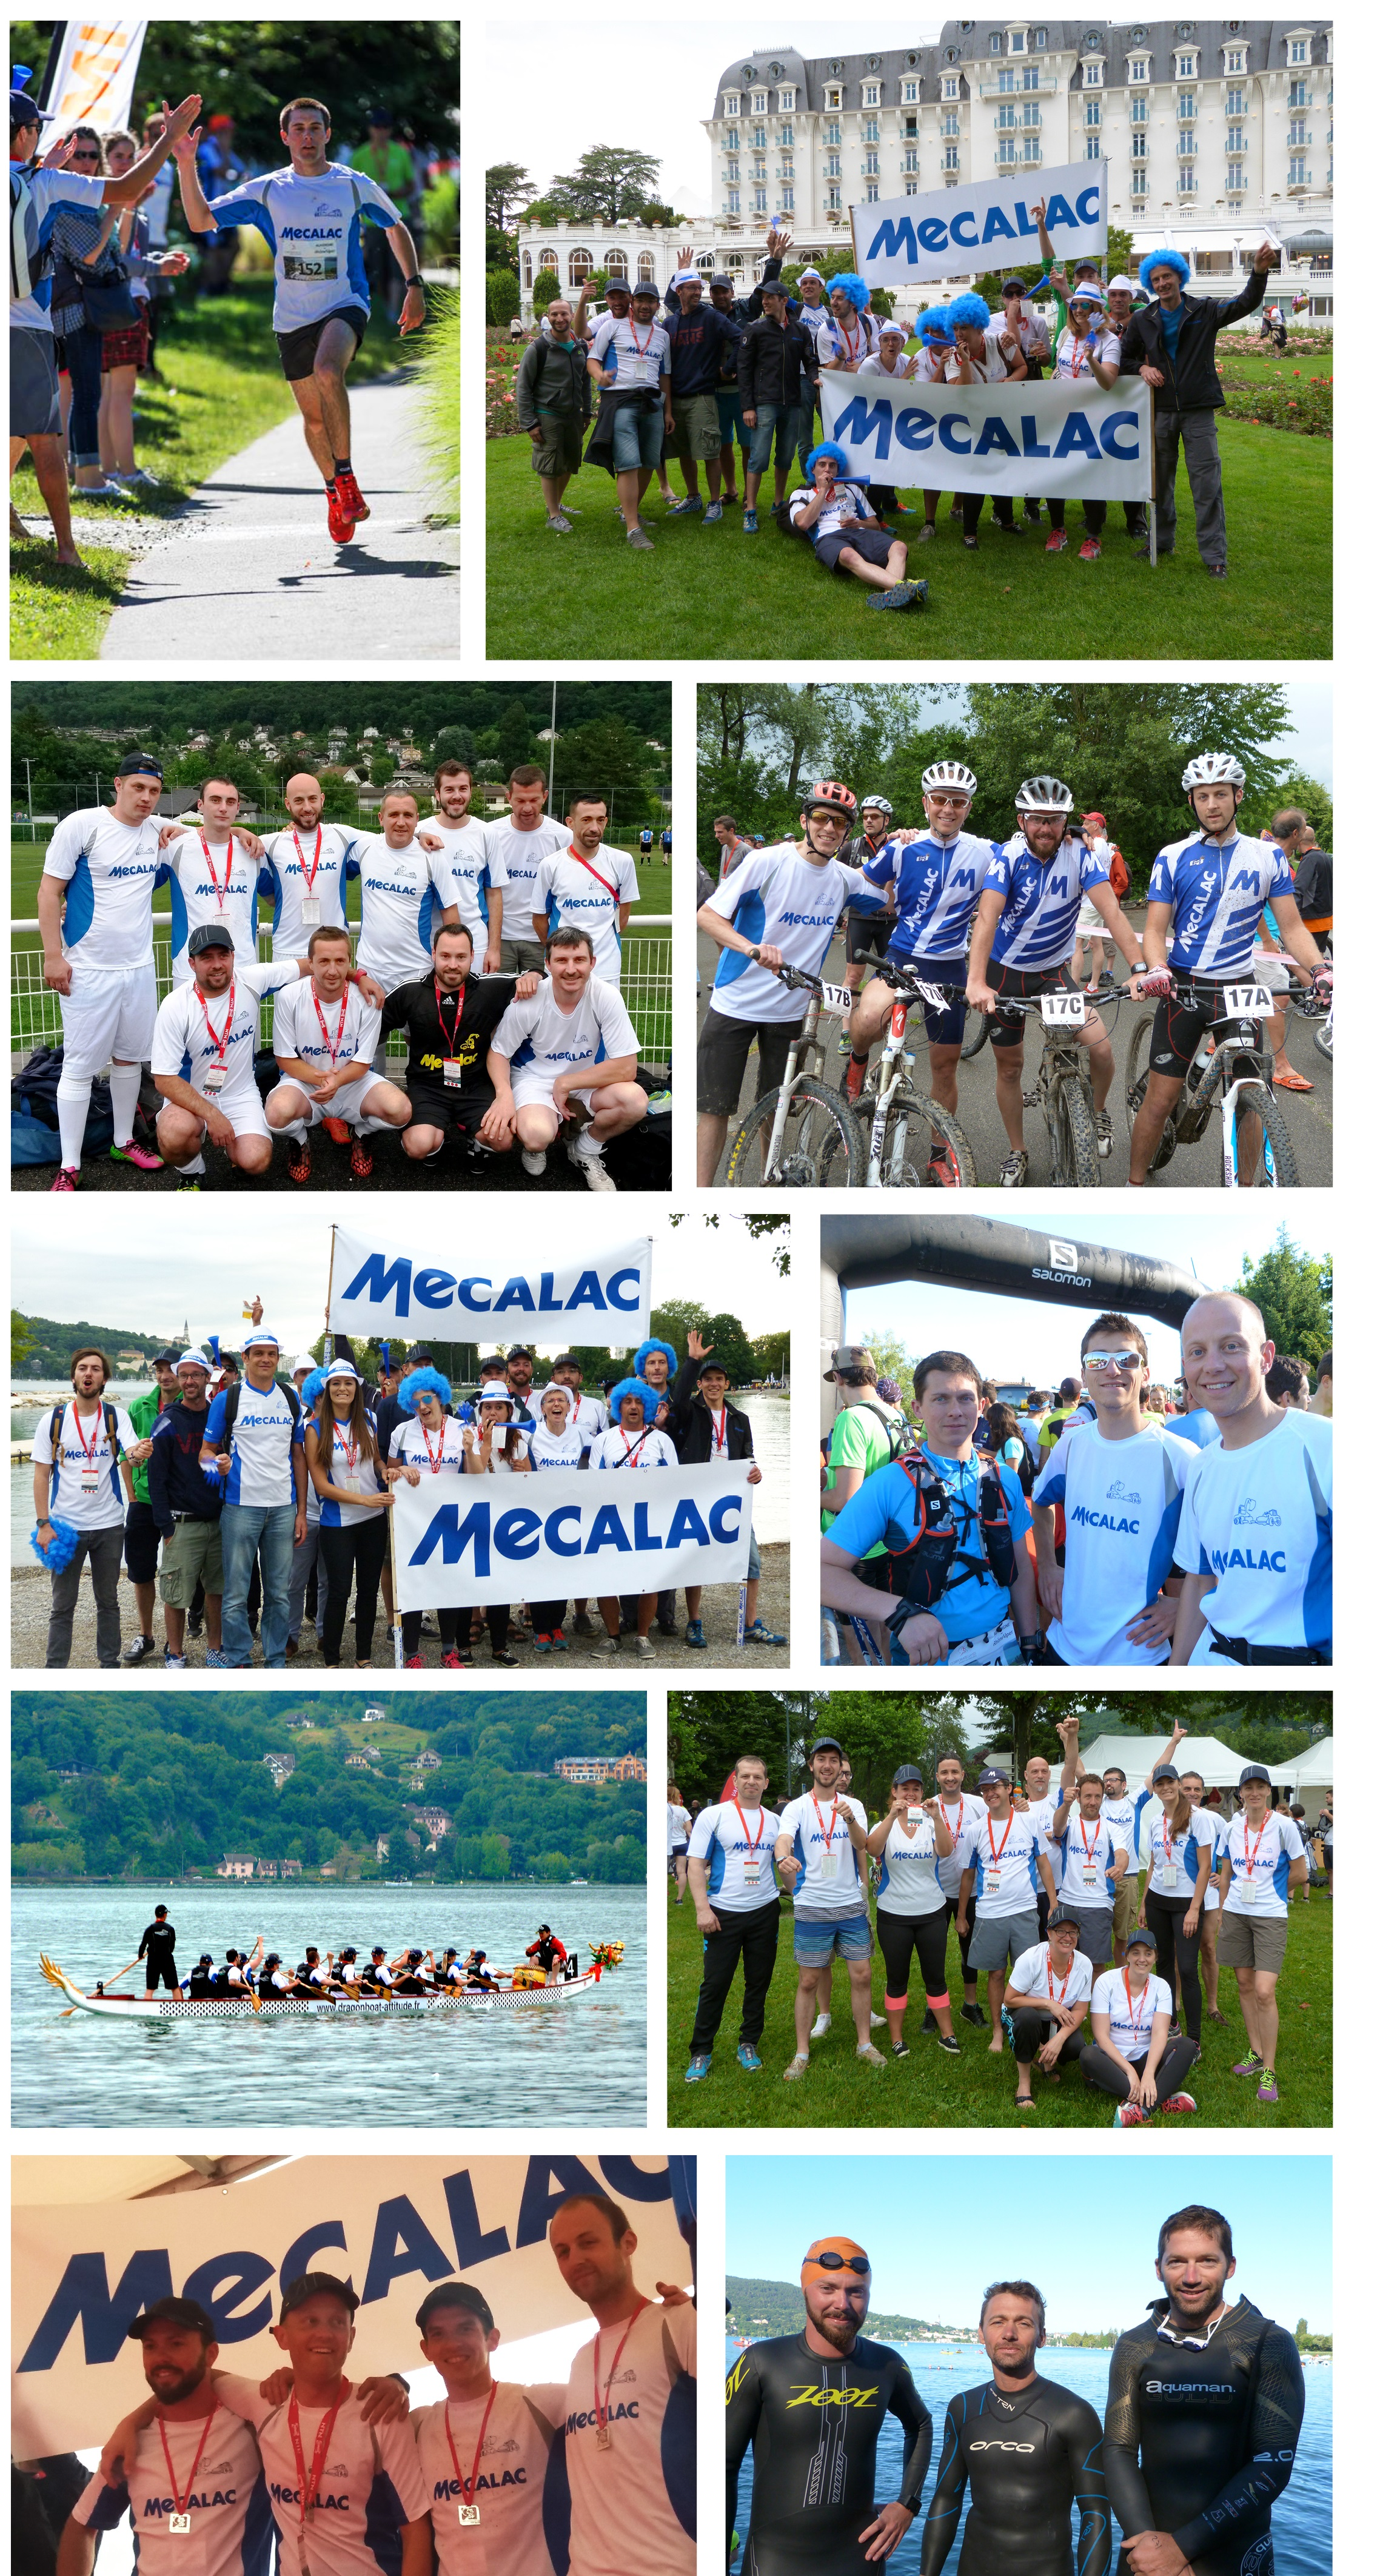 Mecalac at the 2016 Corporate Games